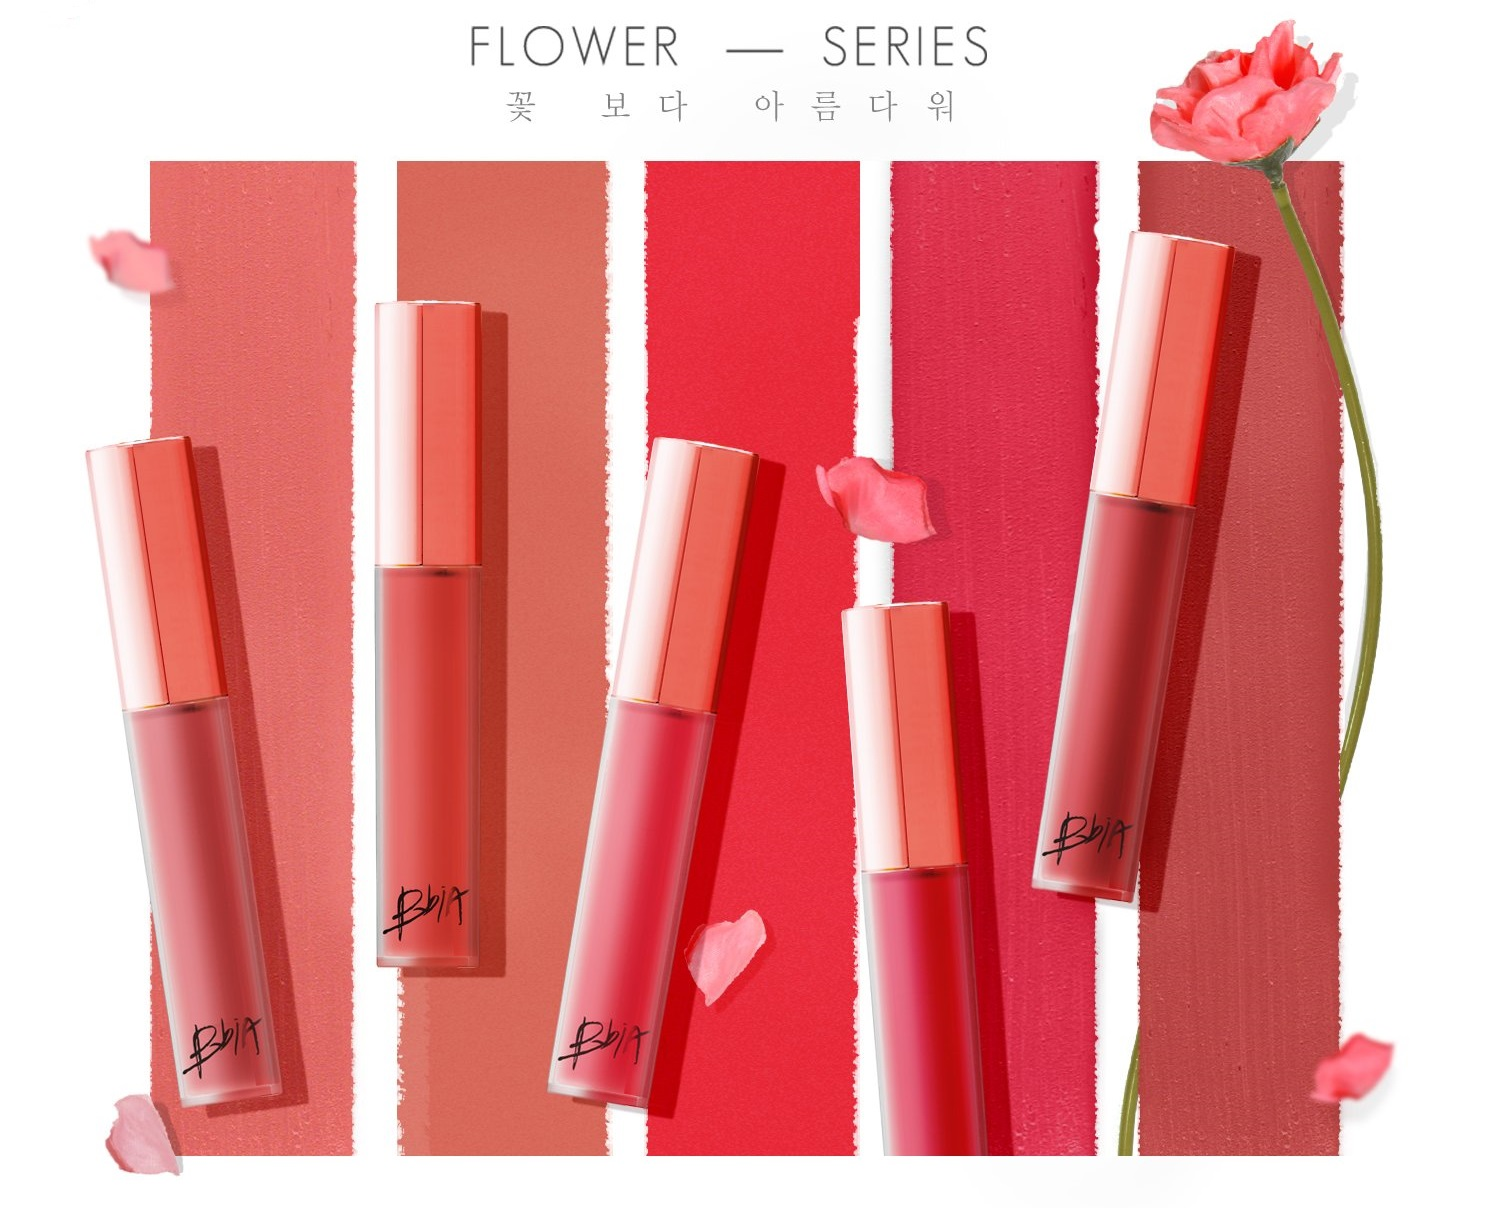 flower series bbia velvet lip tint